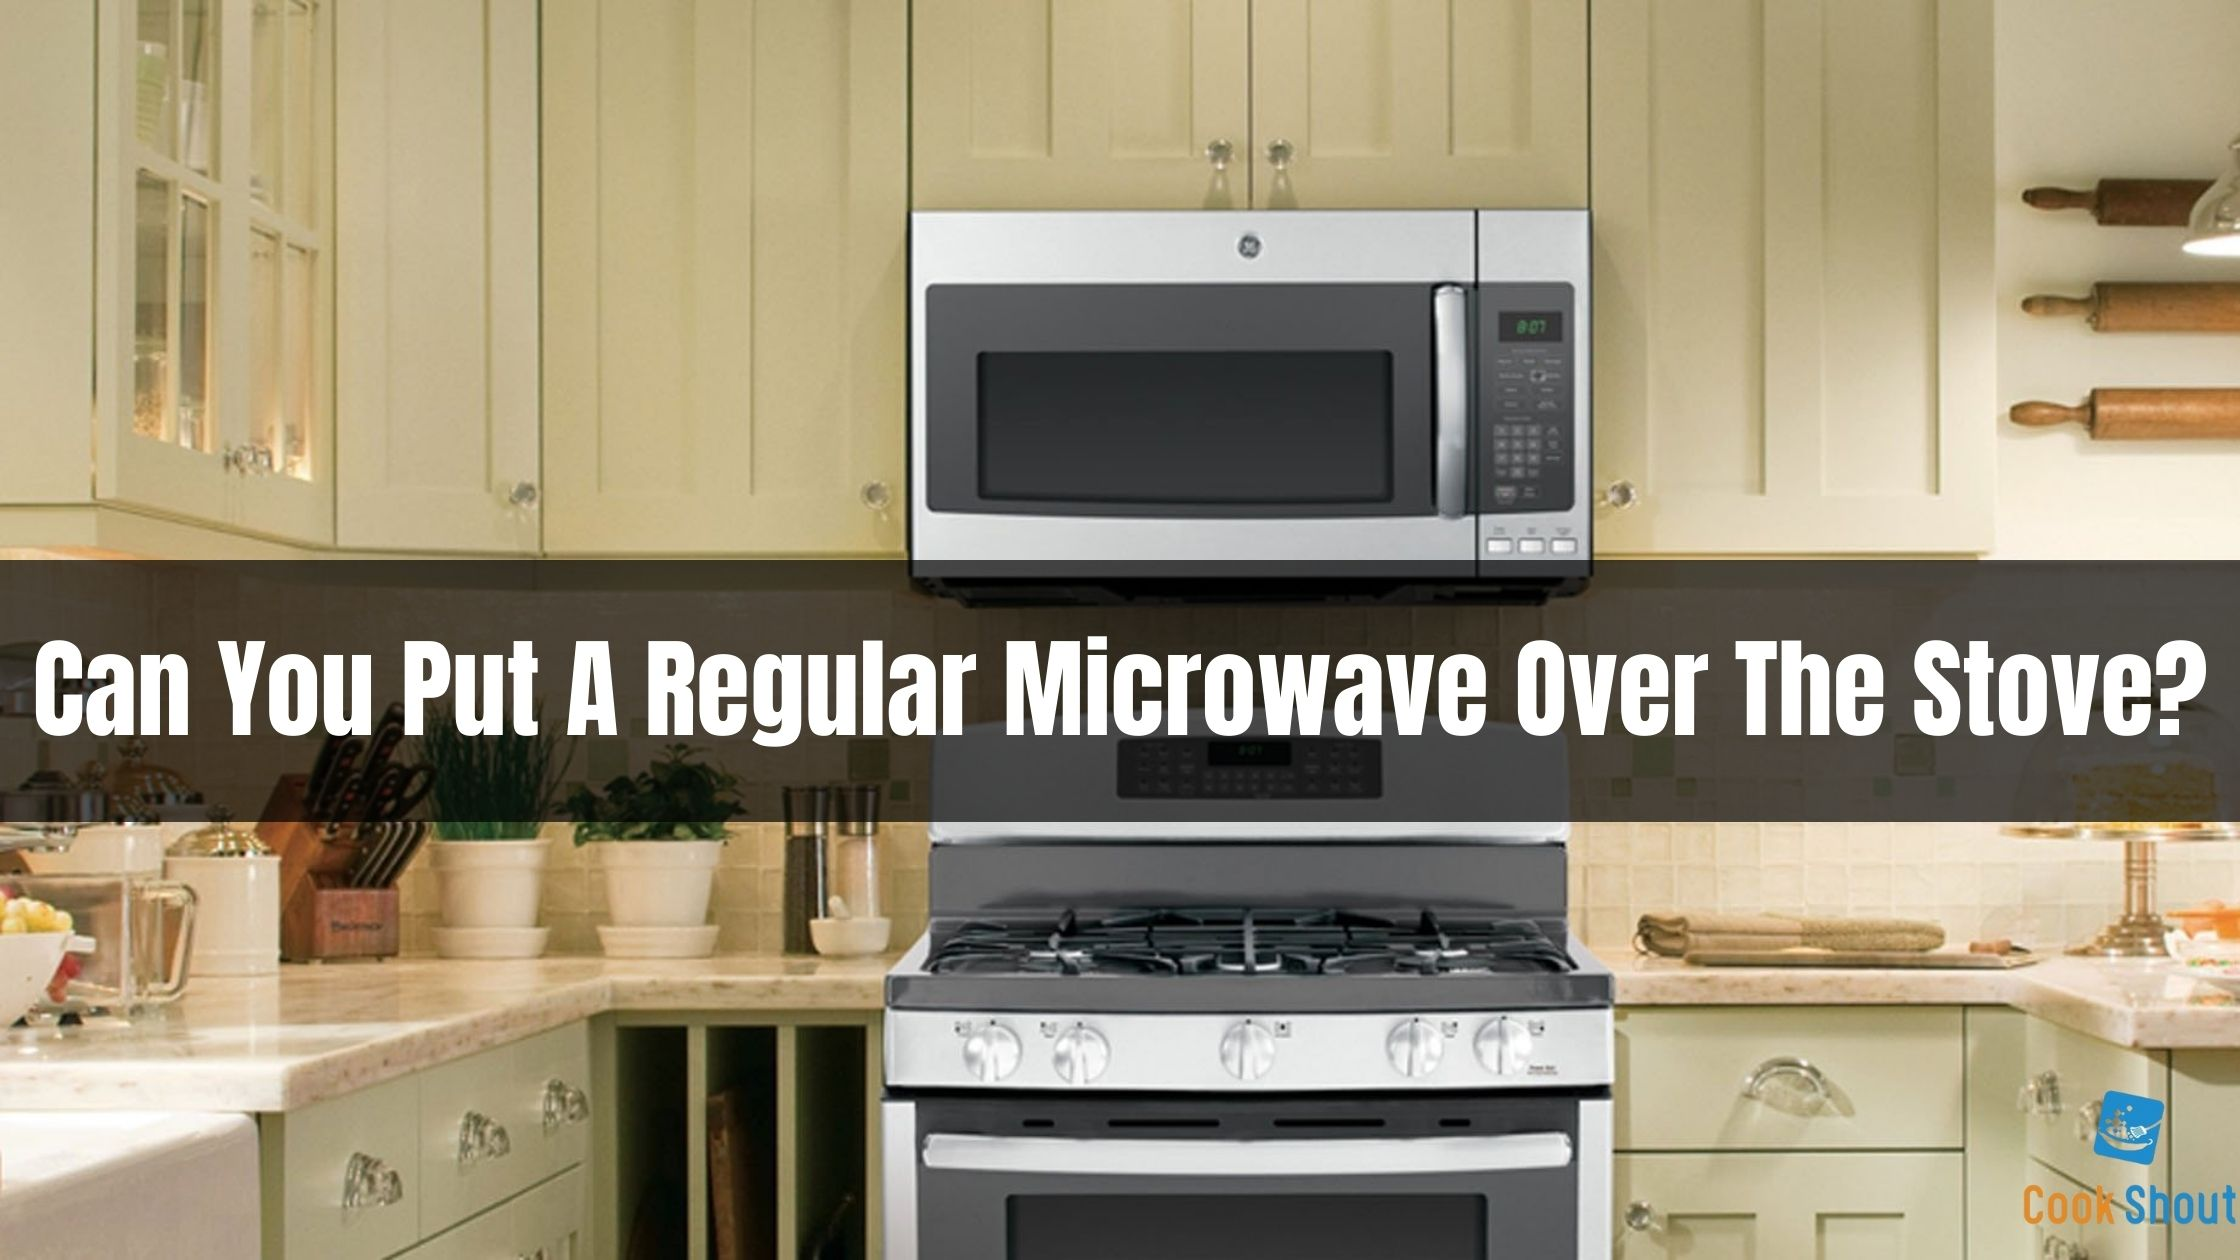 Can You Put A Regular Microwave Over The Stove